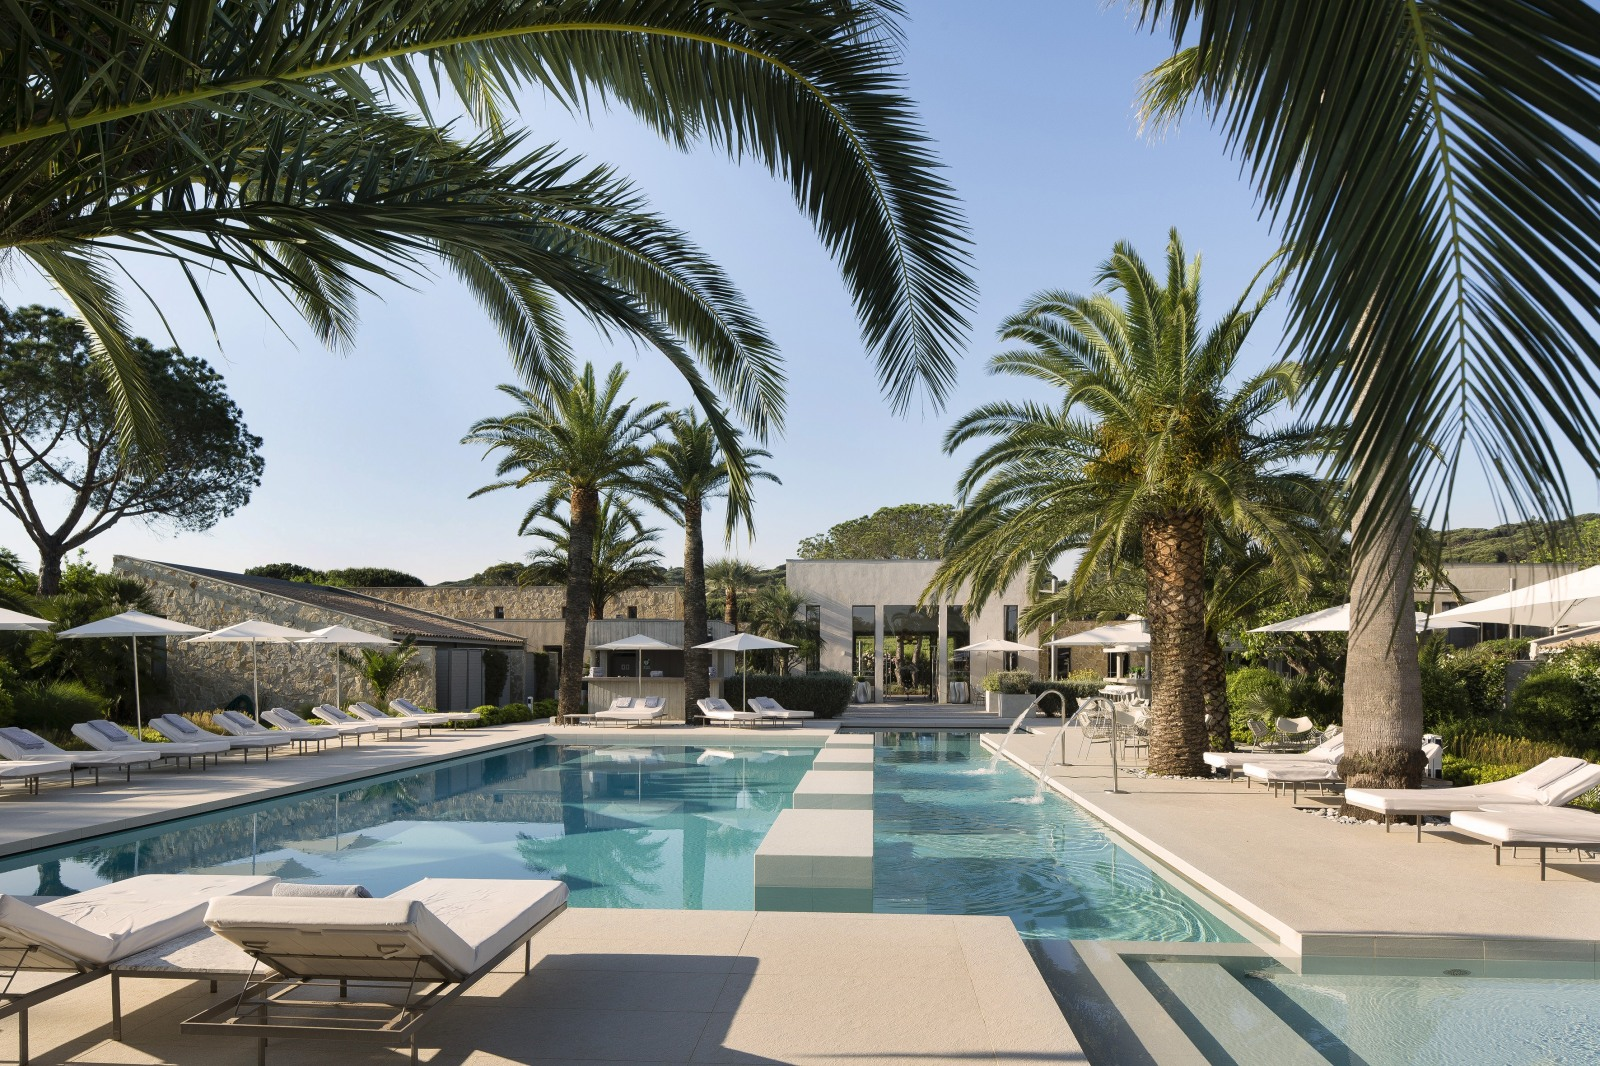 hotel sezz saint tropez from the poolside boutique hotels and villa with pool for chic family. Black Bedroom Furniture Sets. Home Design Ideas